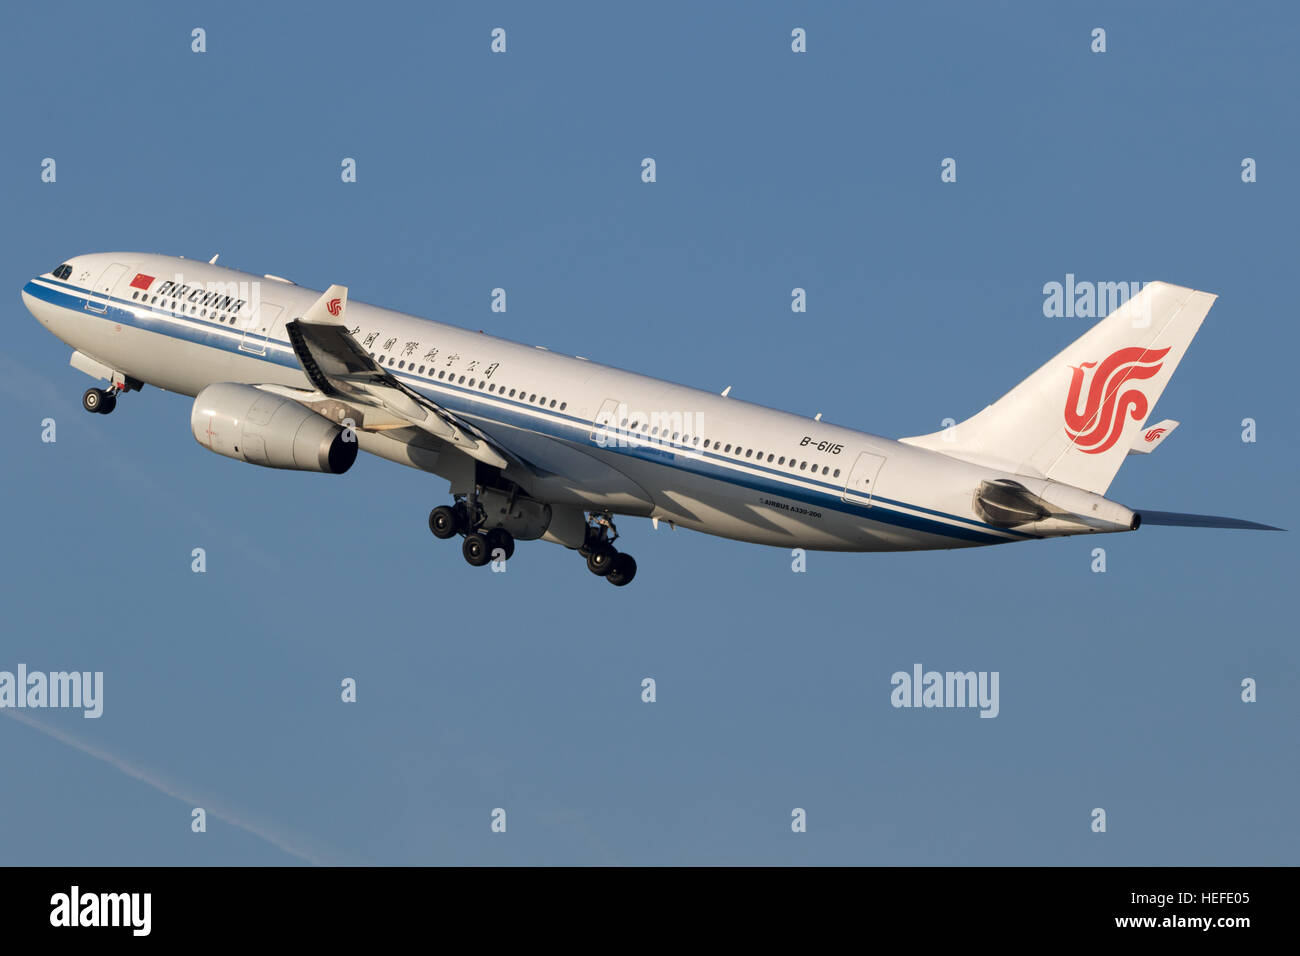 Airbus A330 from Air China taking off from Dusseldorf airport - Stock Image